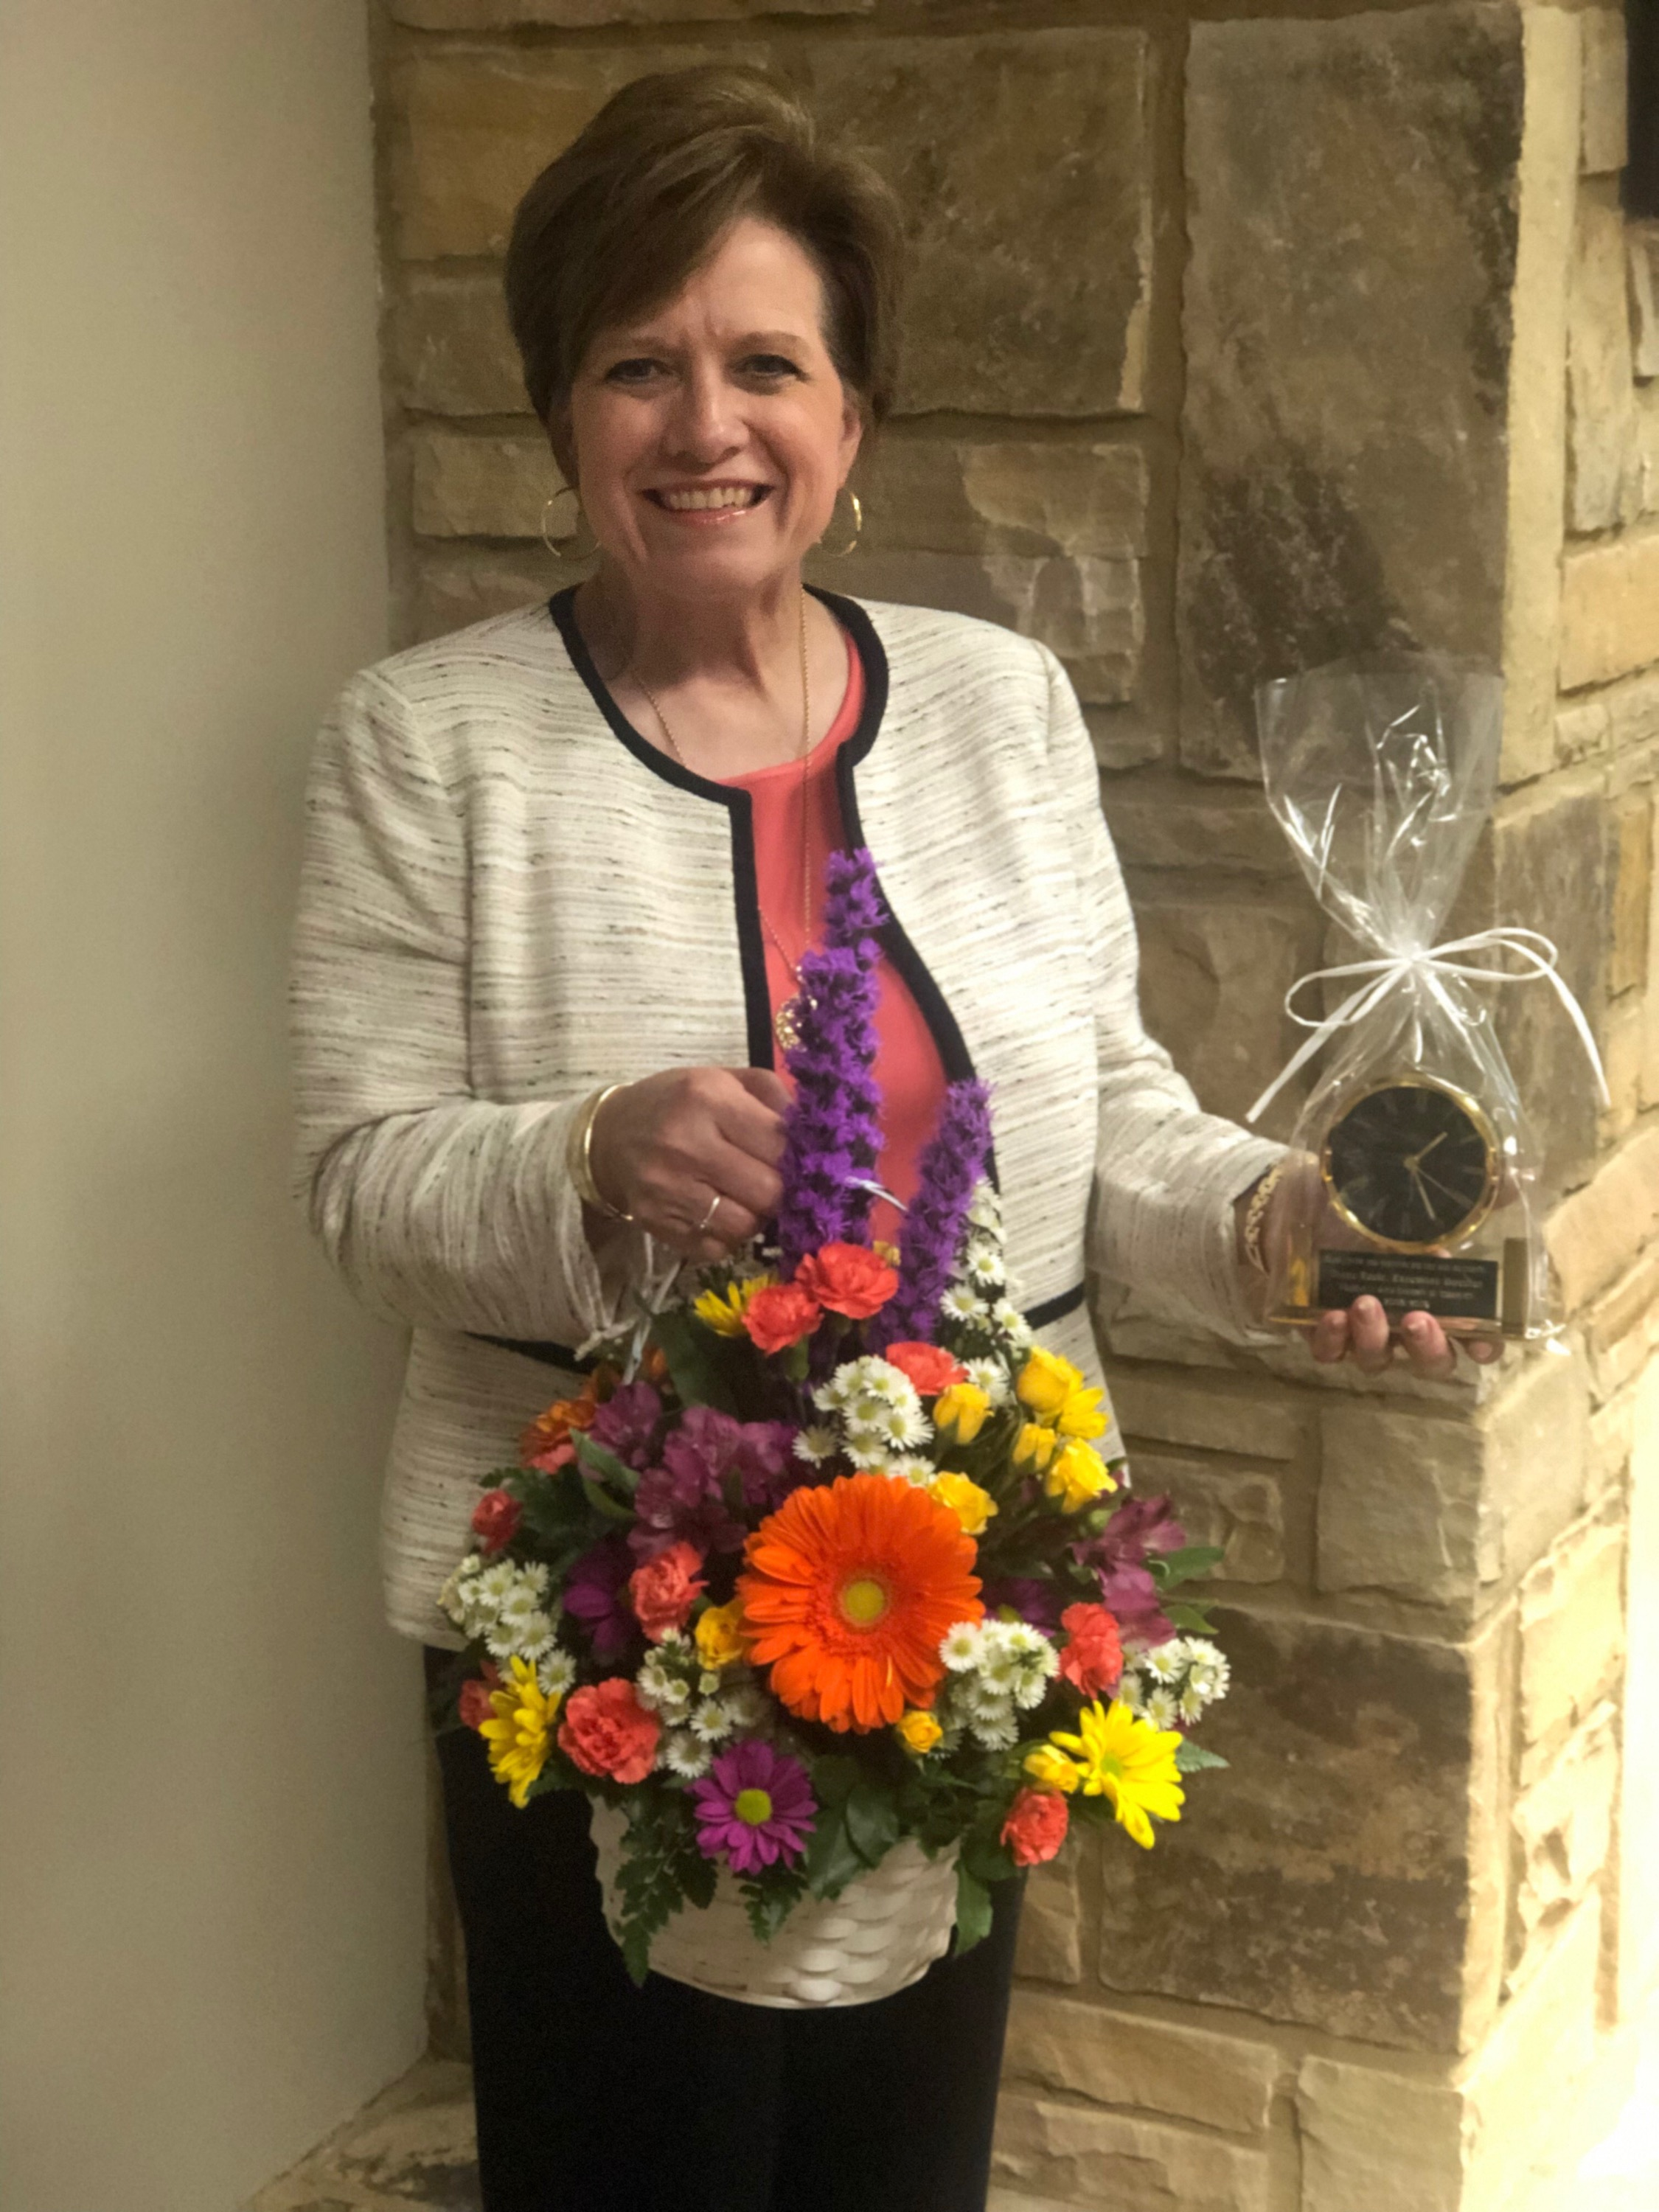 Director of Trussville Area Chamber of Commerce Diane Poole announces retirement